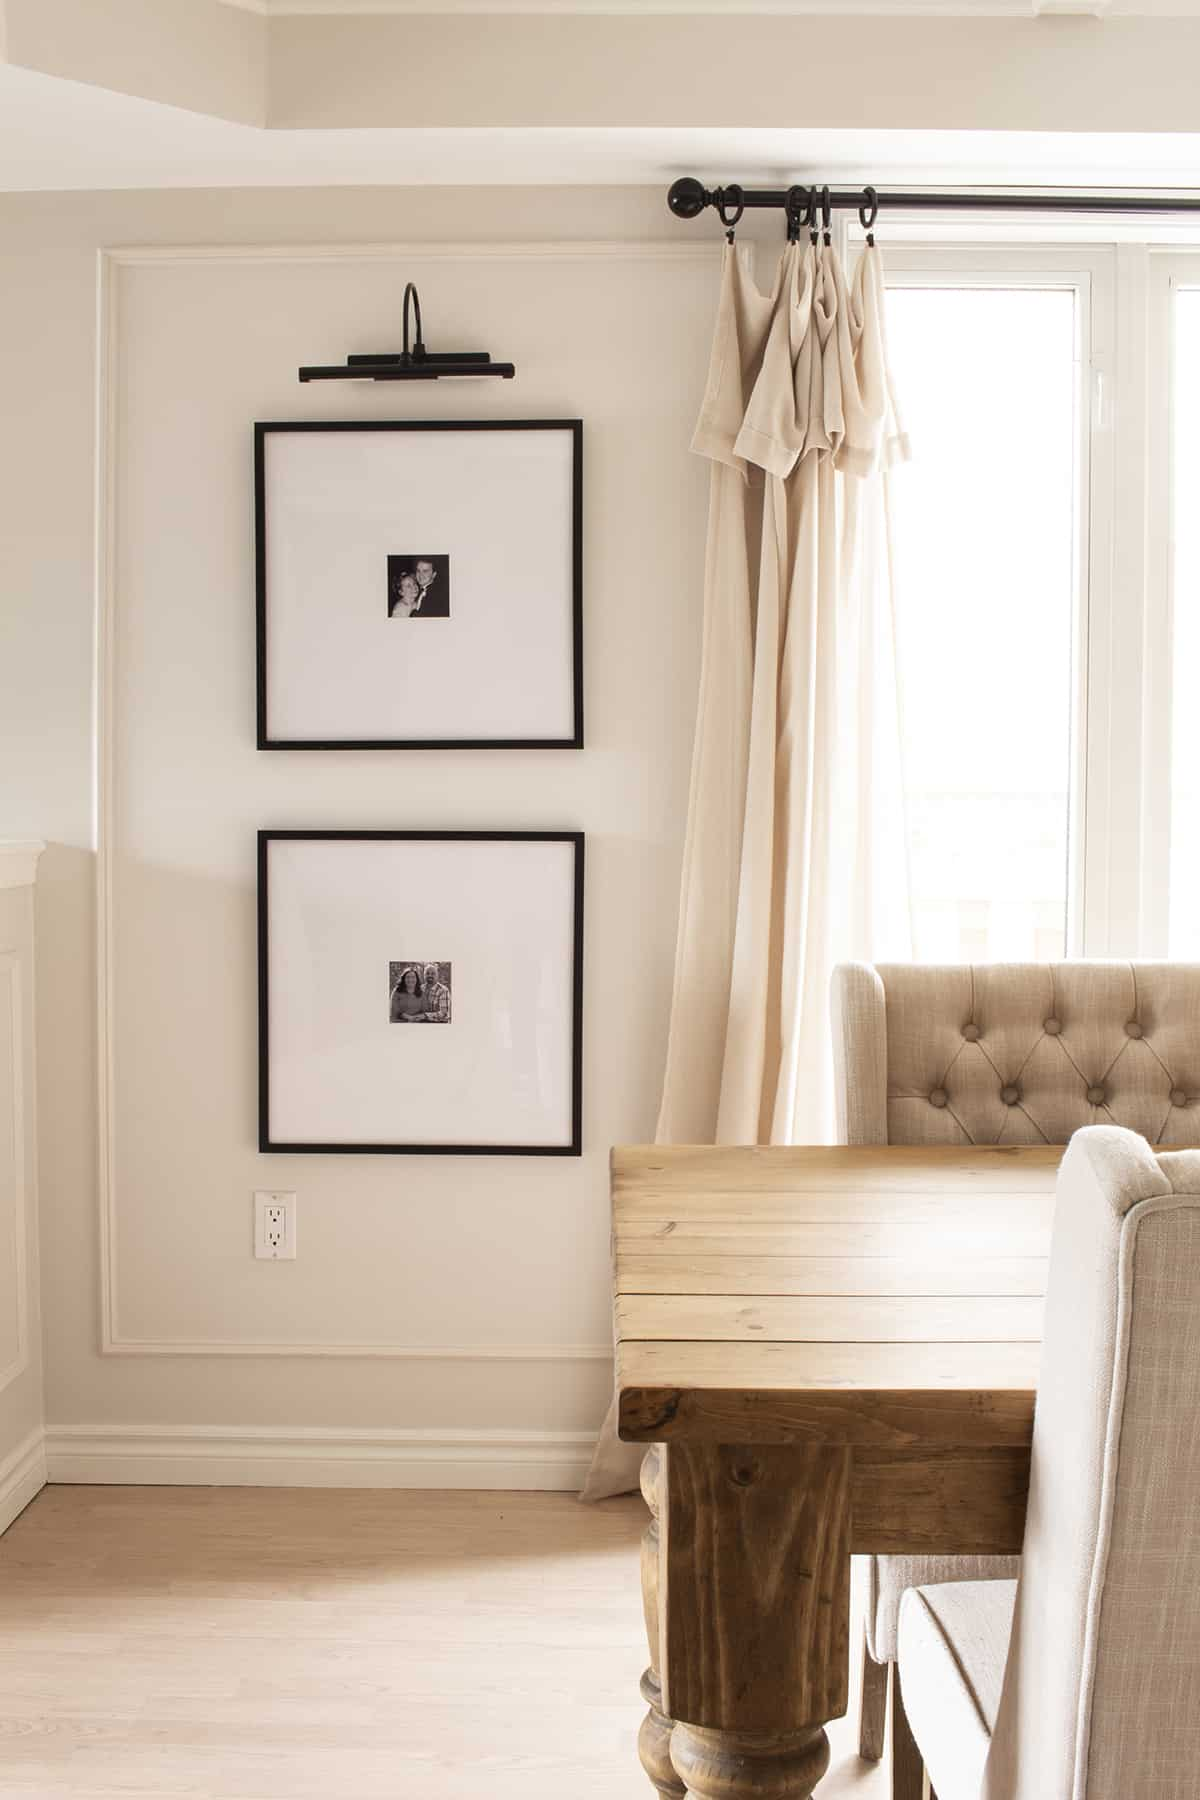 Gallery Light and Large Square Matted Prints